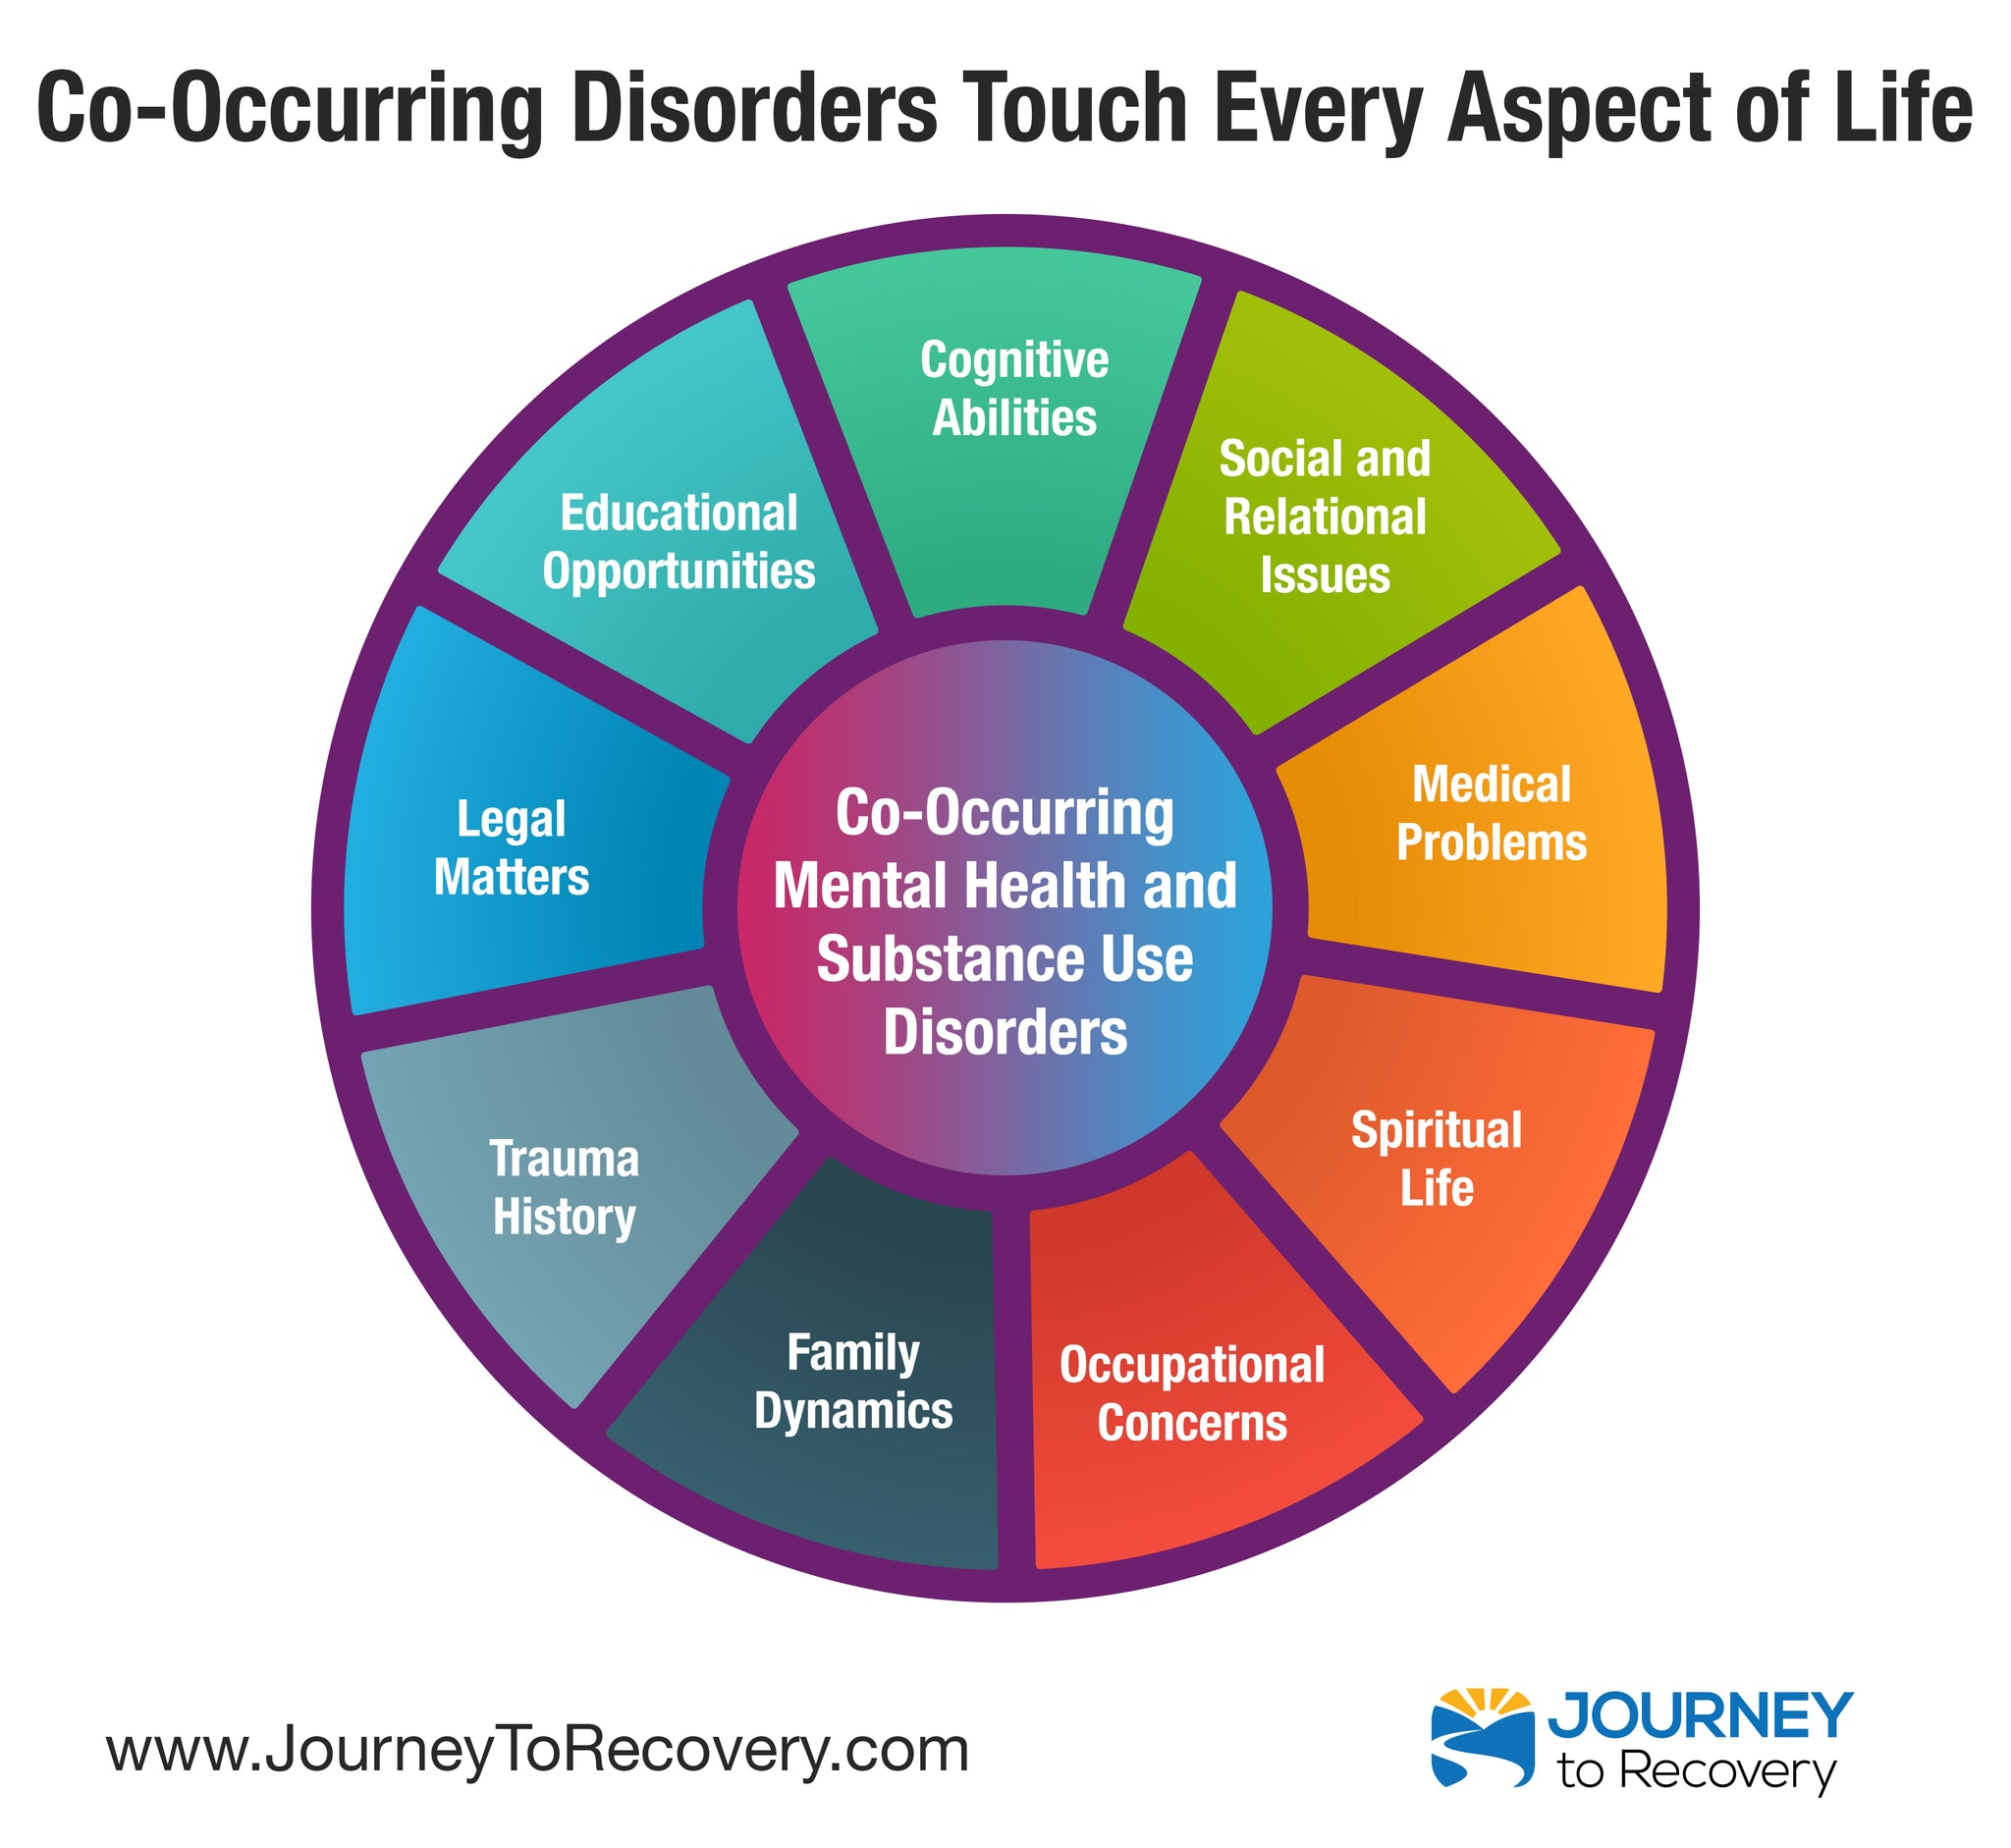 Infographic - Co-Occurring Disorders Touch Every Aspect of Life